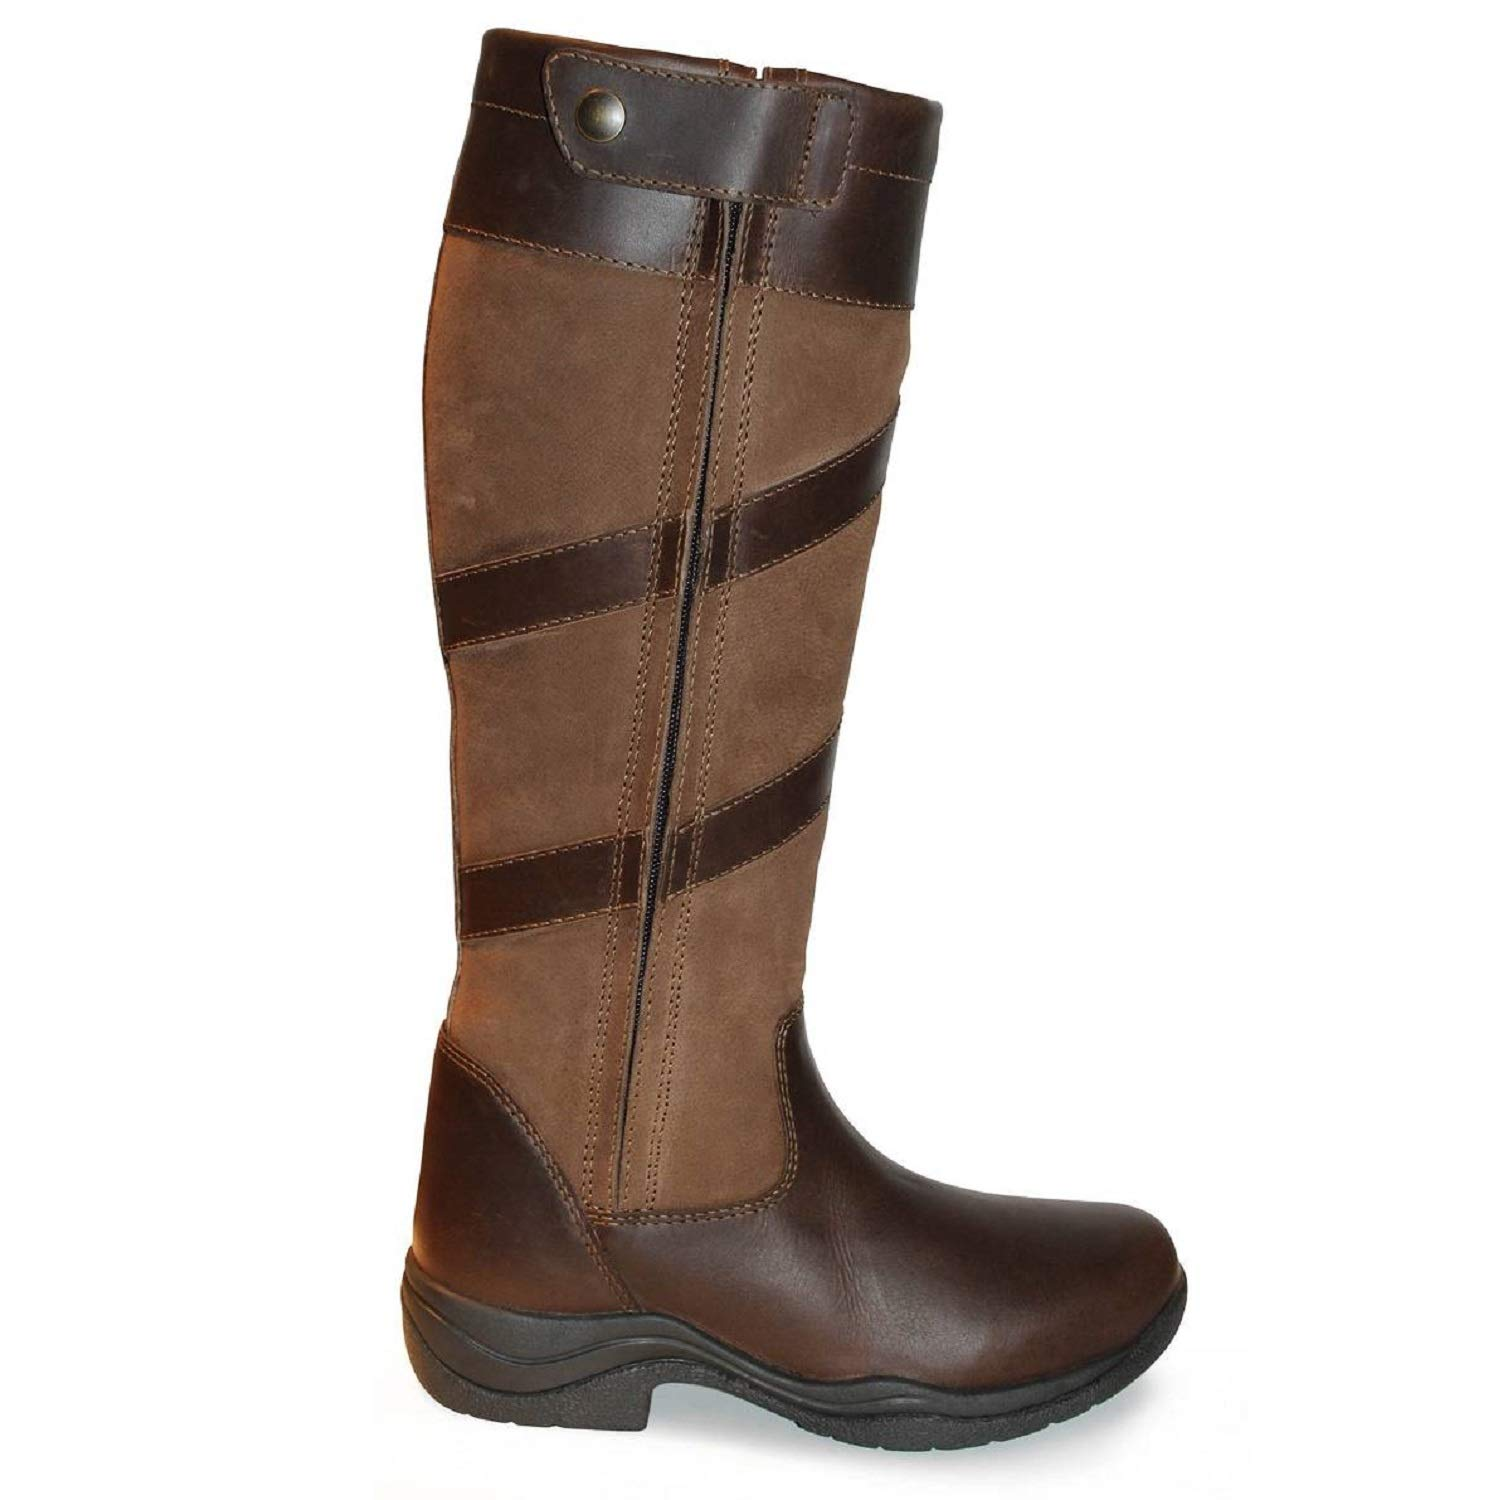 Mark Todd Adults Tall Waterproof Zip Boots (9 US (Standard)) (Brown) by Mark Todd